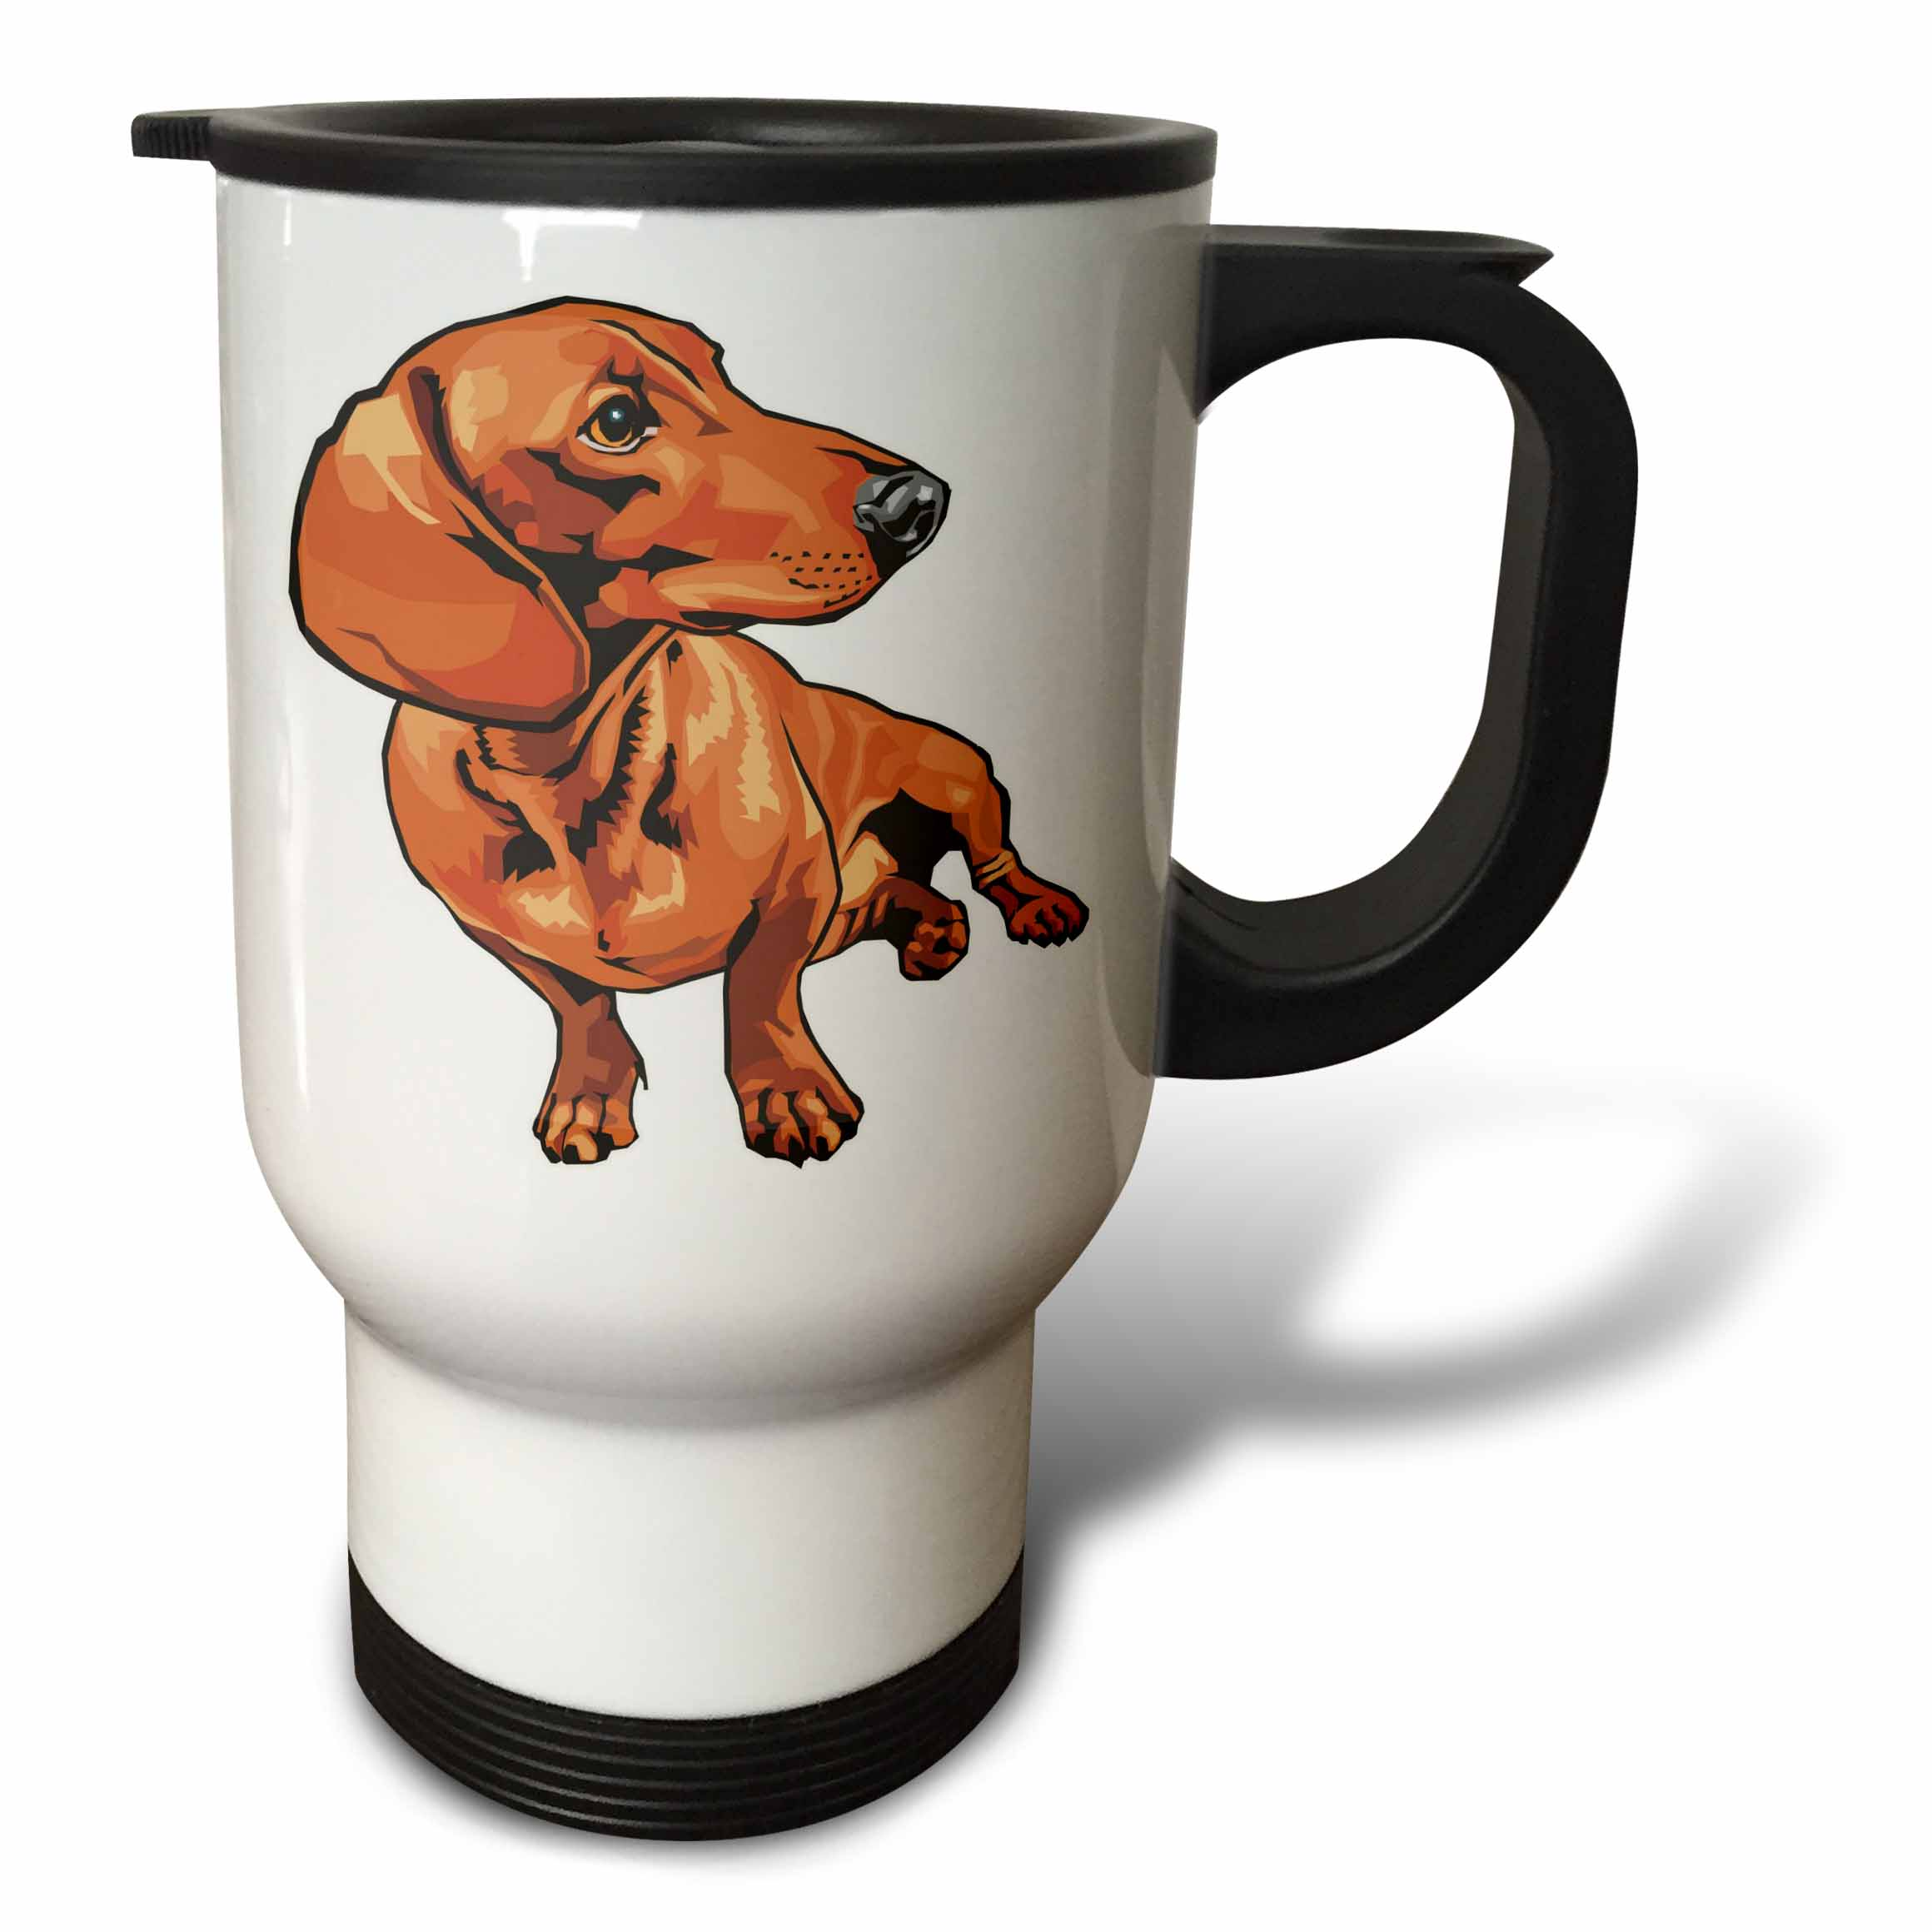 3dRose Cute and Cuddly Canine Red Dachshund, Travel Mug, 14oz, Stainless Steel